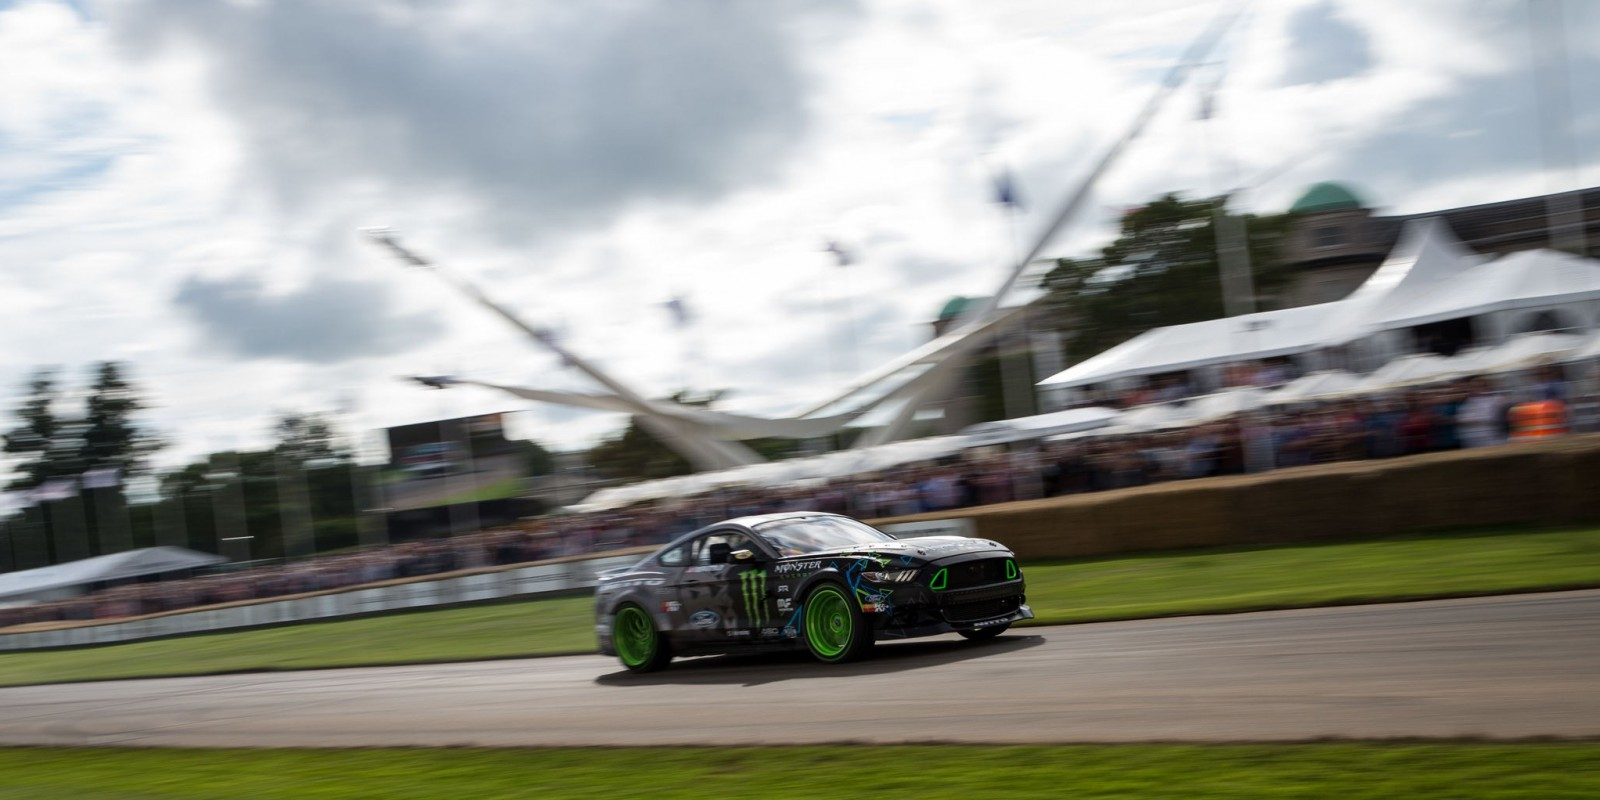 Images from Thursday at Goodwood Festival of Speed 2016